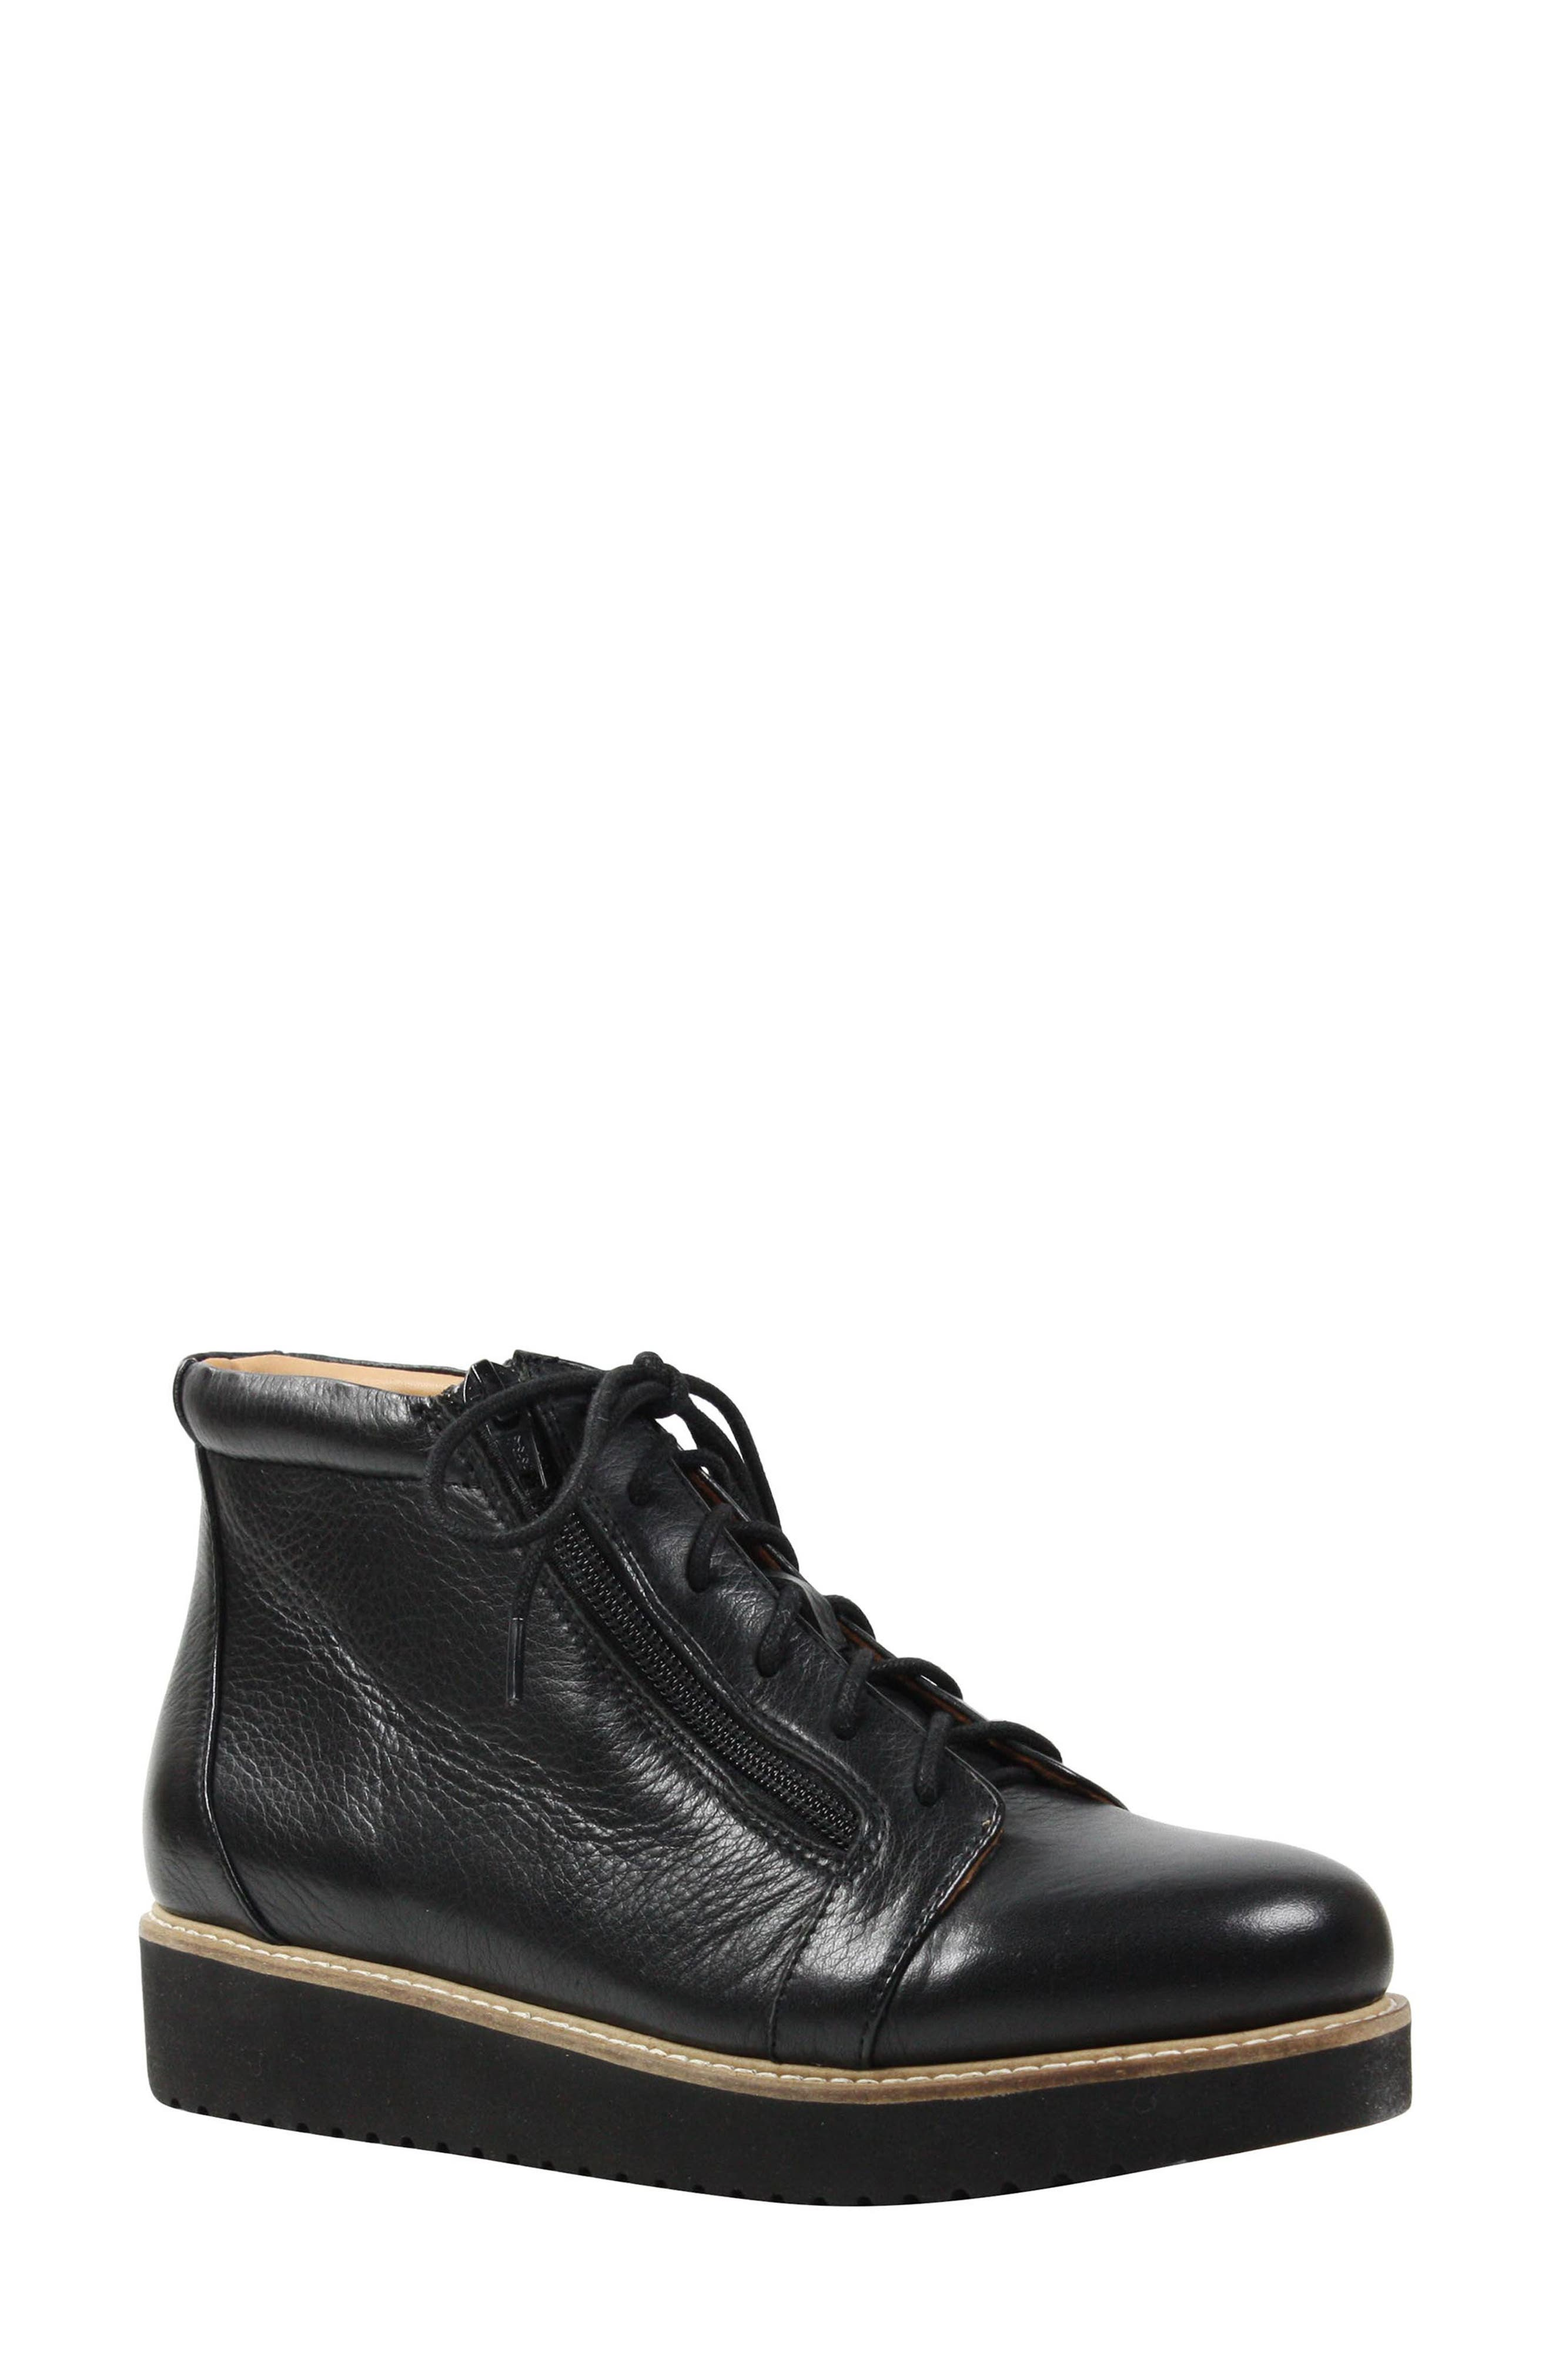 Xandrie Bootie,                             Main thumbnail 1, color,                             Black Leather